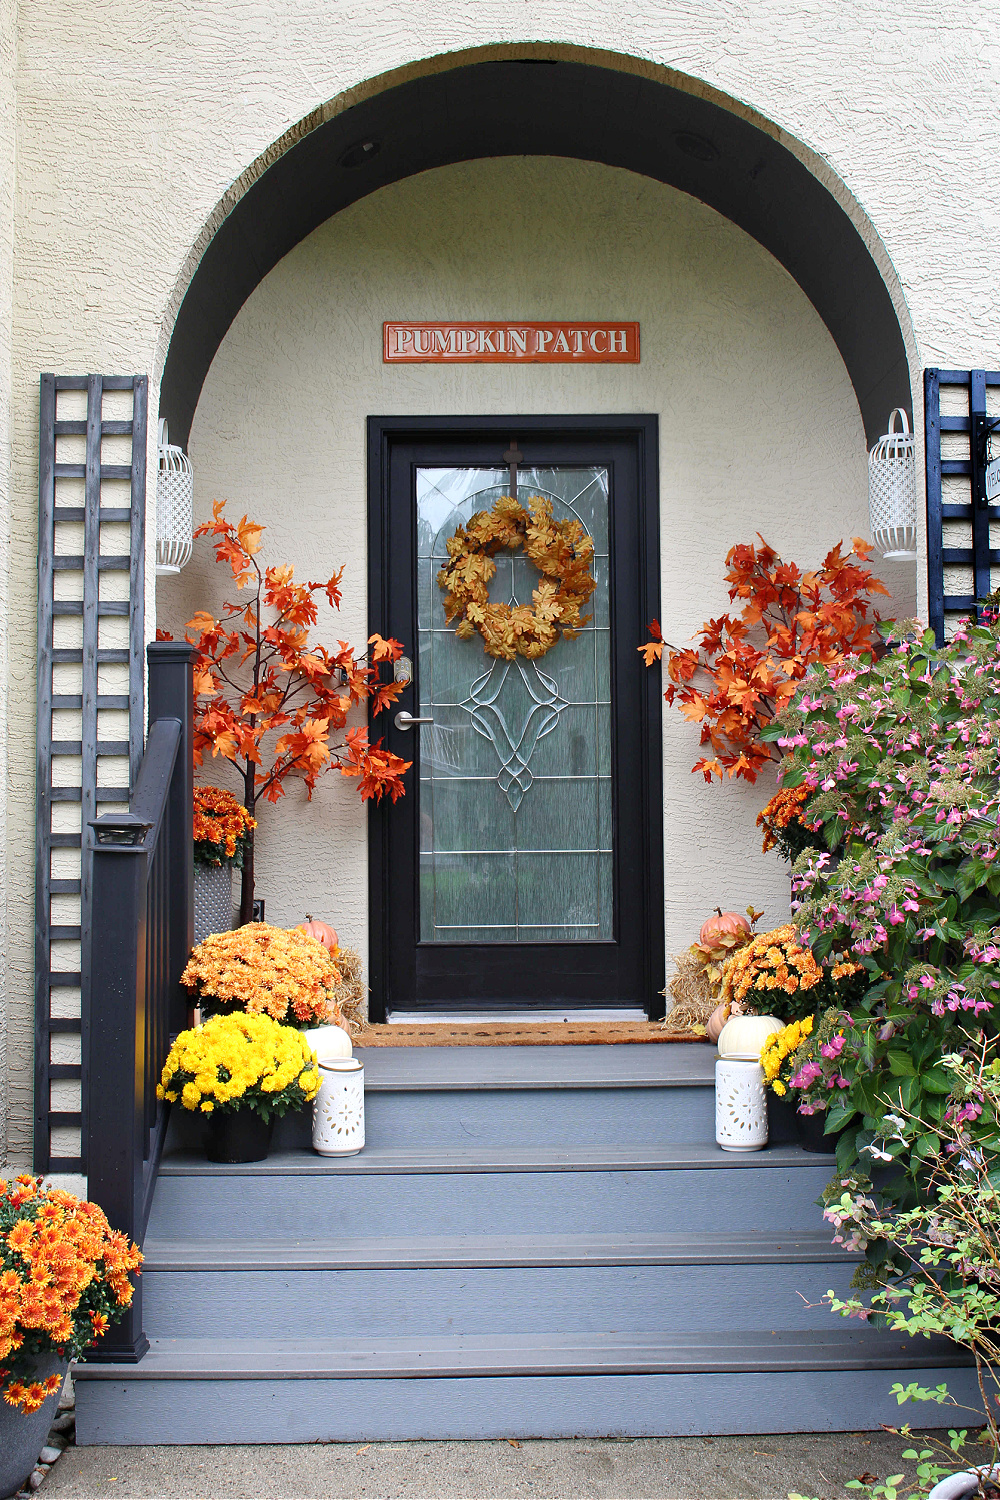 Fall front porch decorated with mums, pumpkins and lighted trees.